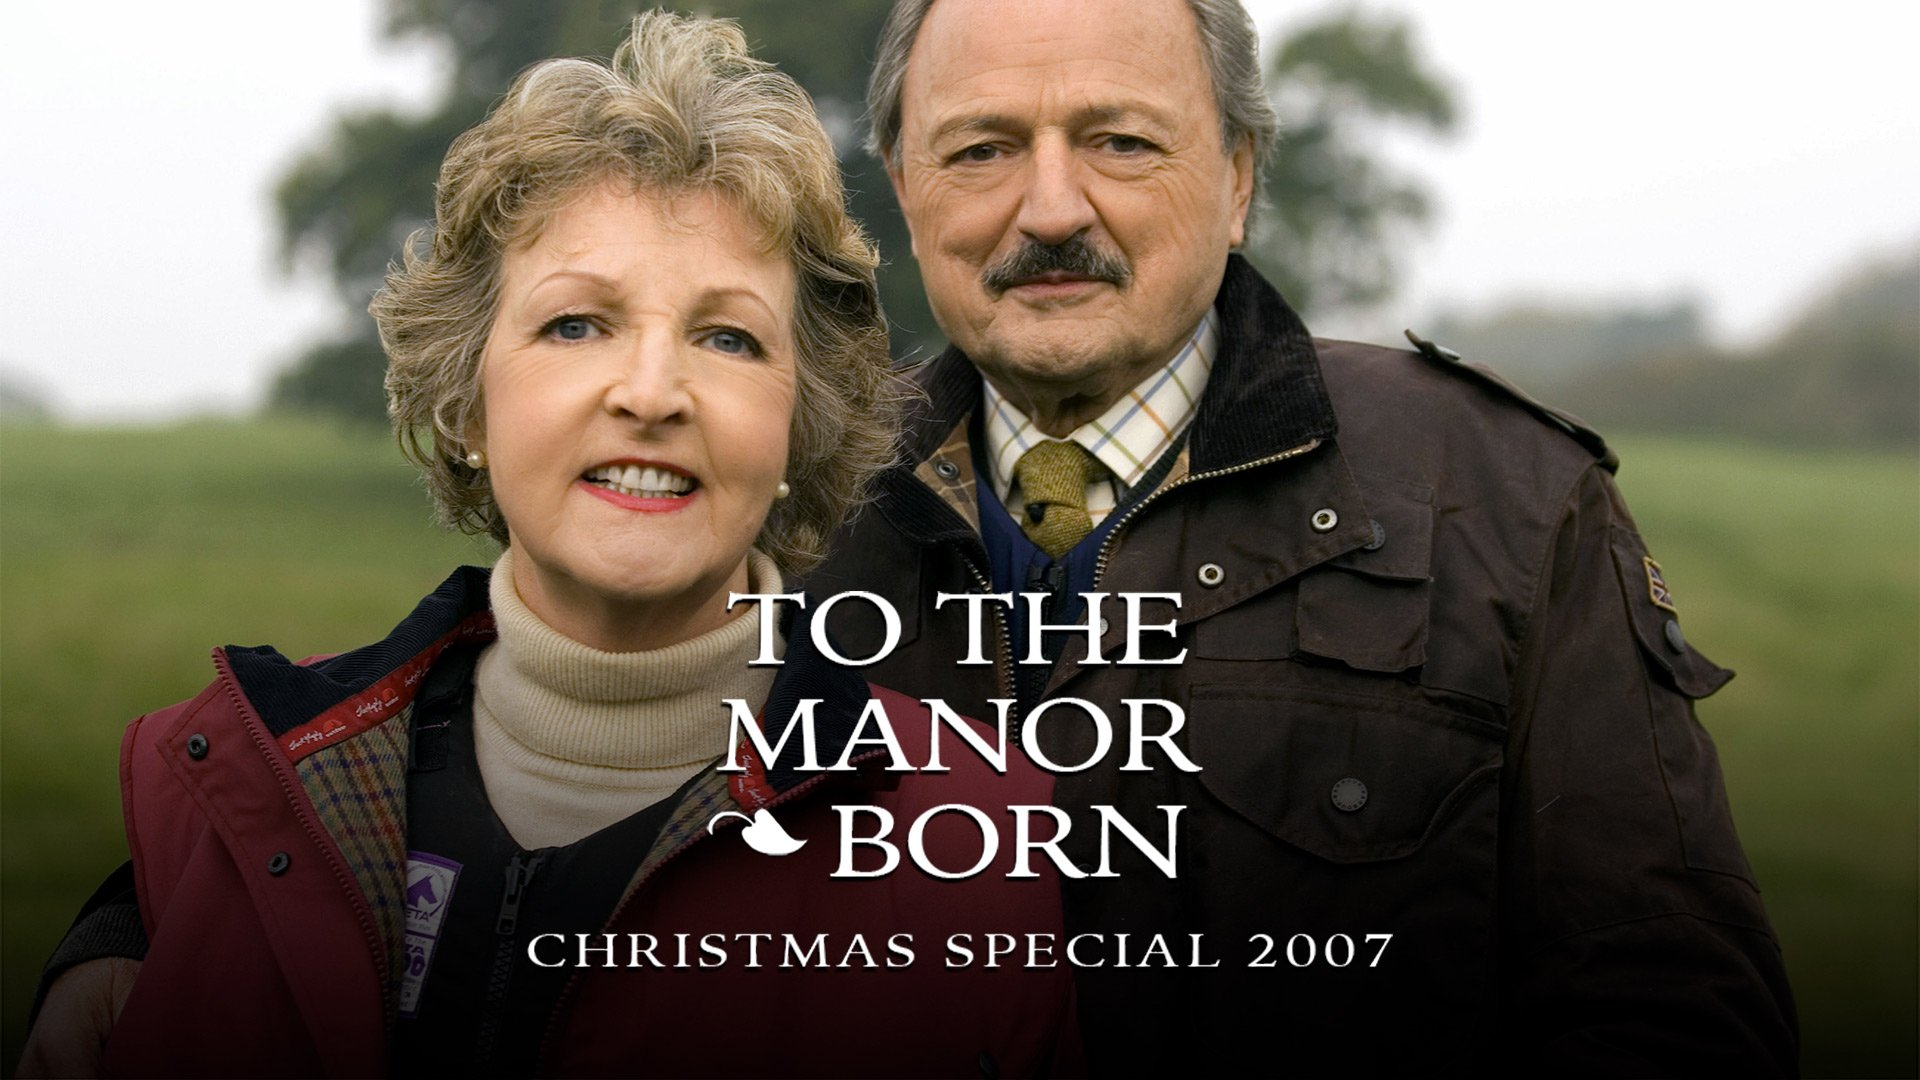 To the Manor Born Christmas Special 2007 on BritBox UK